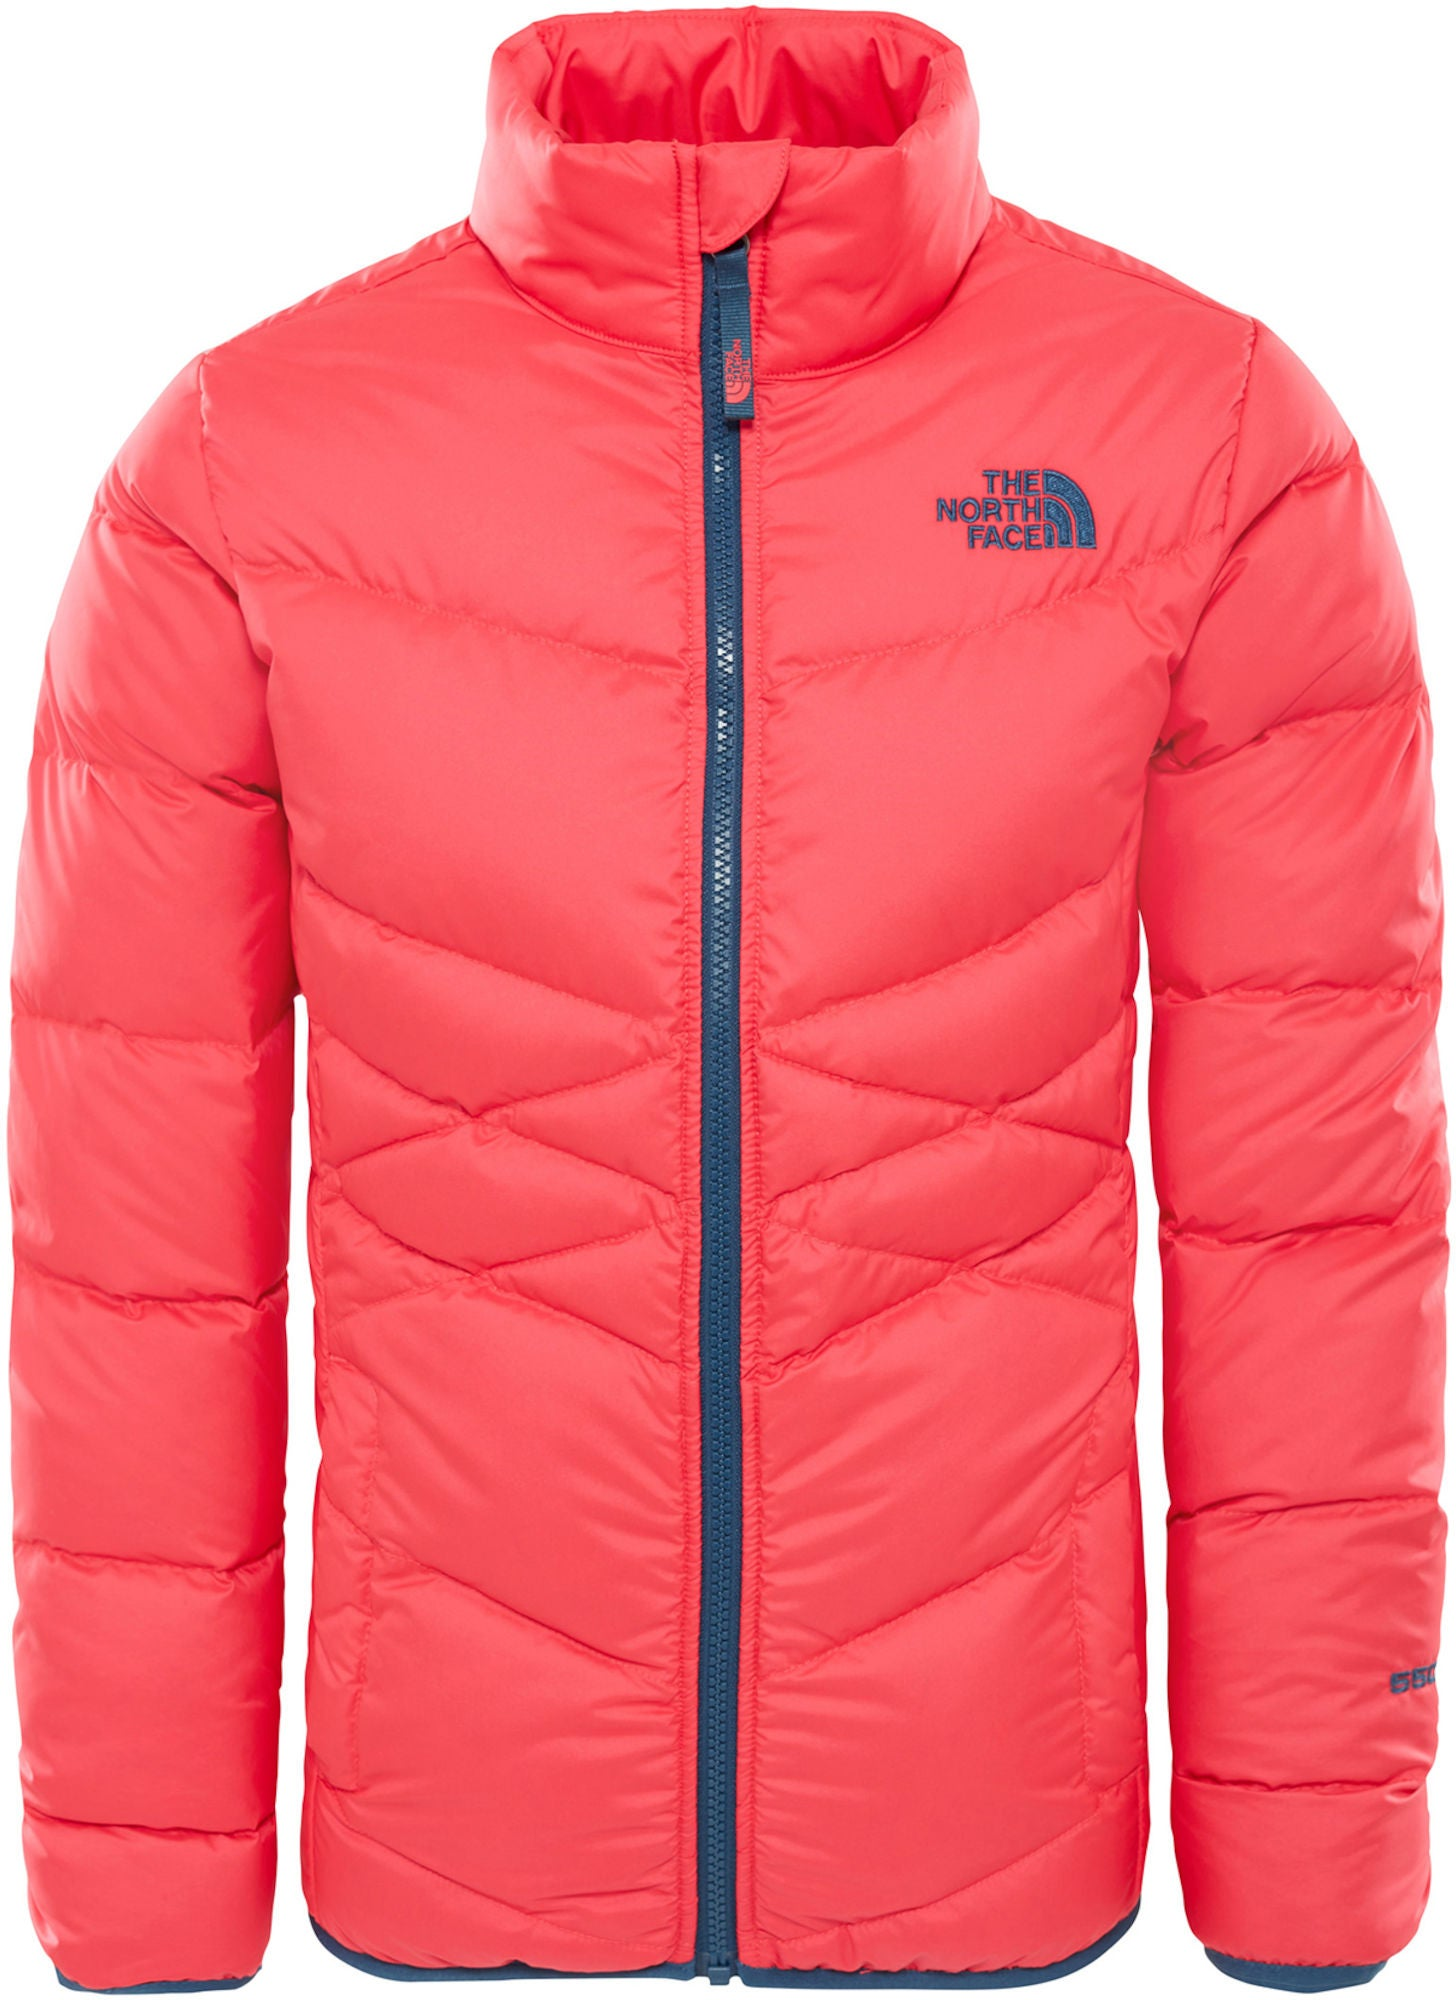 The North Face Andes Down Jacka Barn, Atomic Pink L